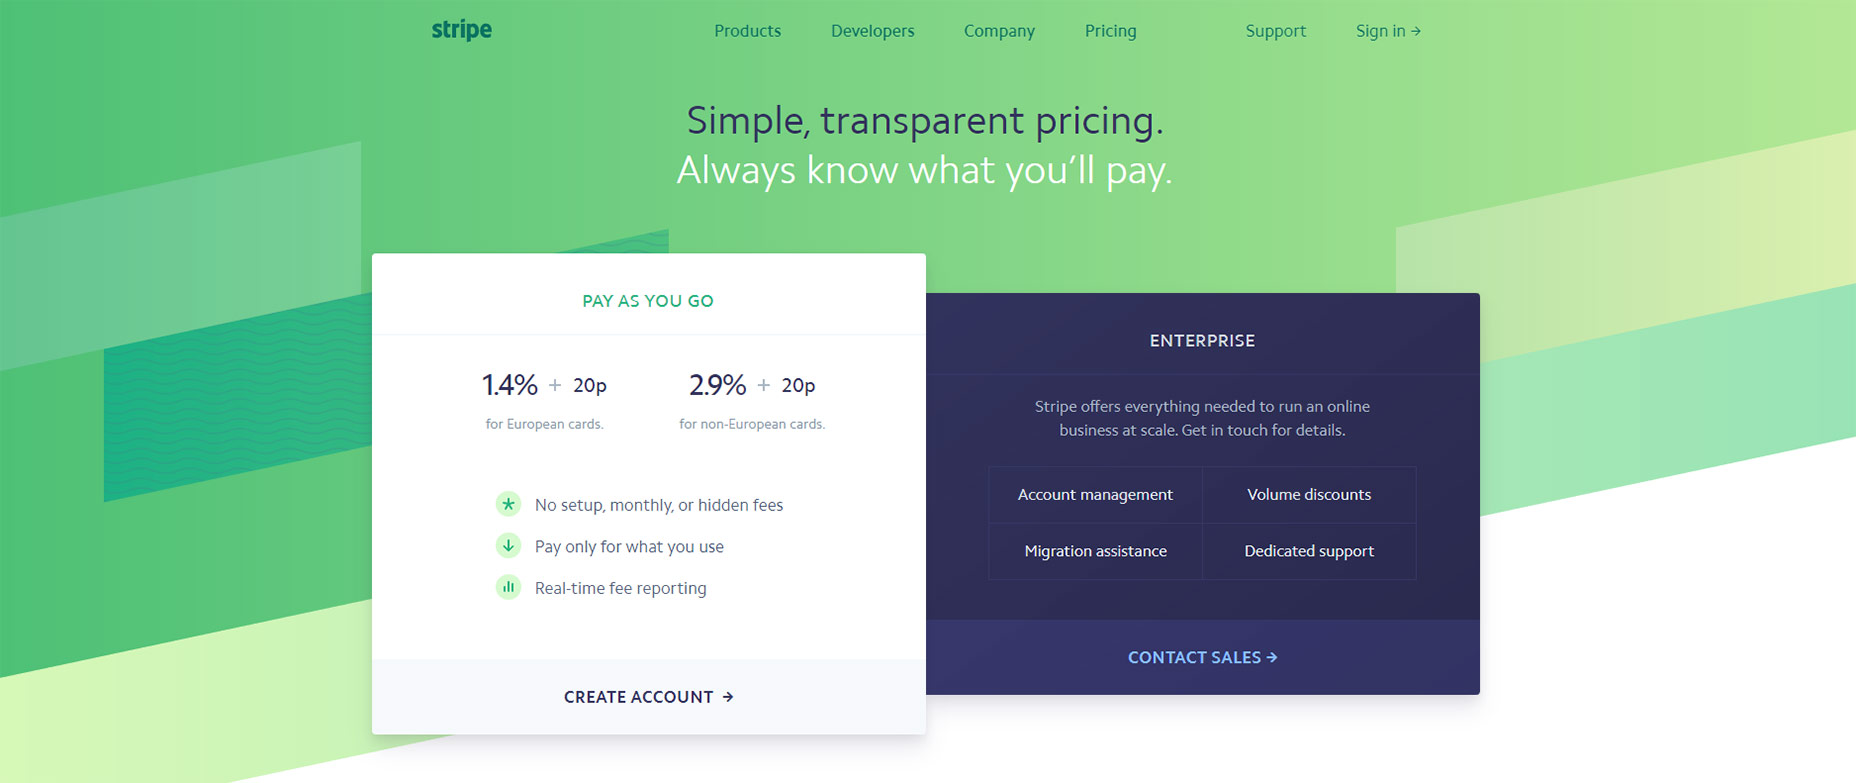 11-stripe-pricing-page